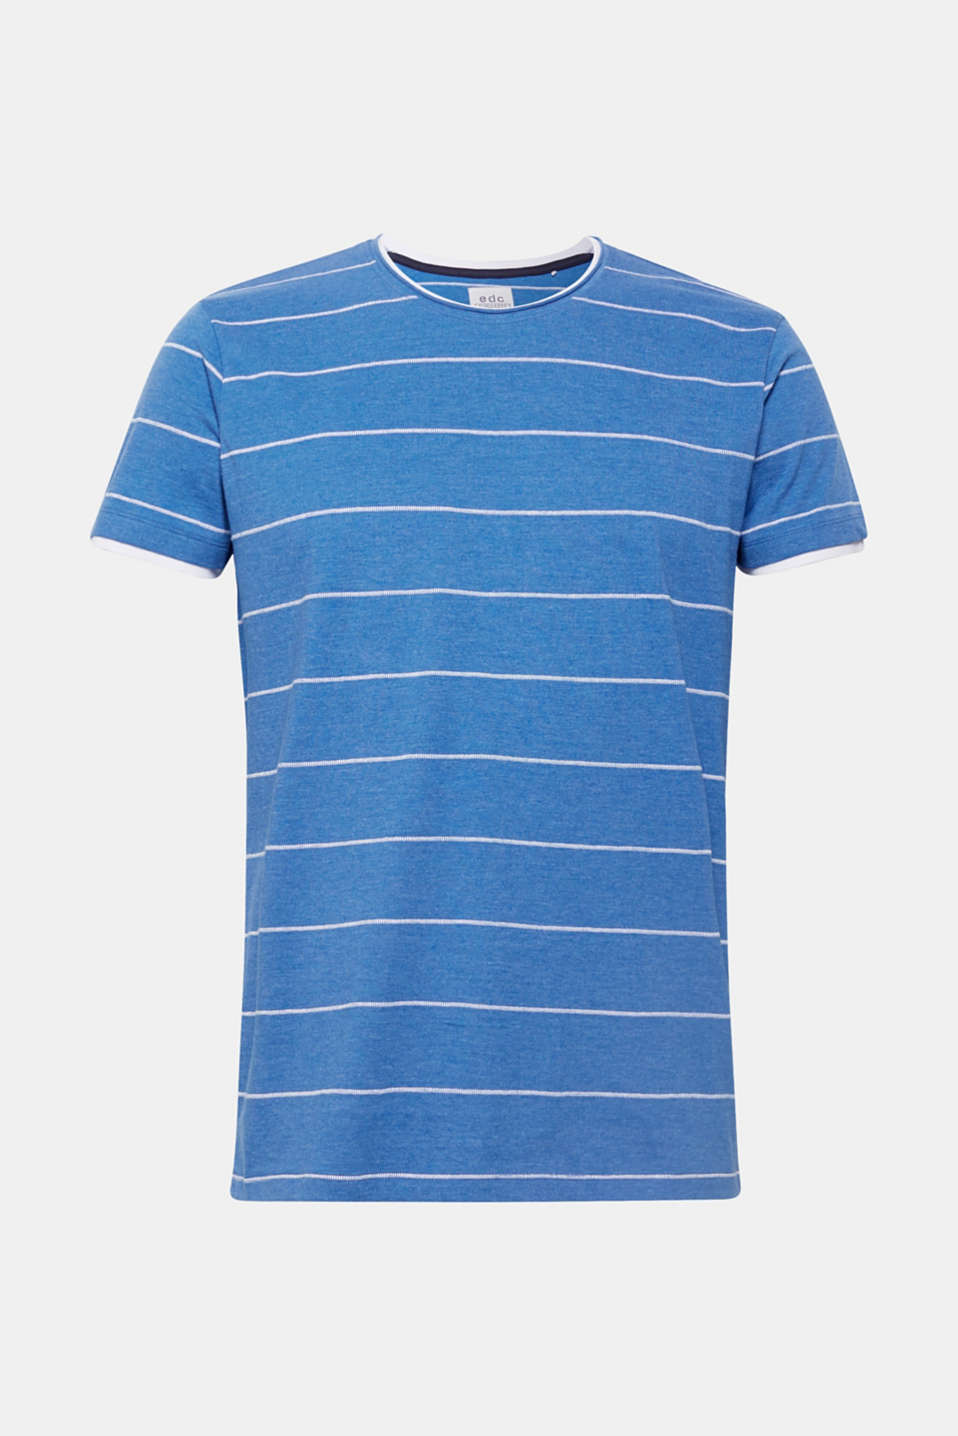 100% cotton-jersey tee with textured stripes, BLUE, detail image number 6